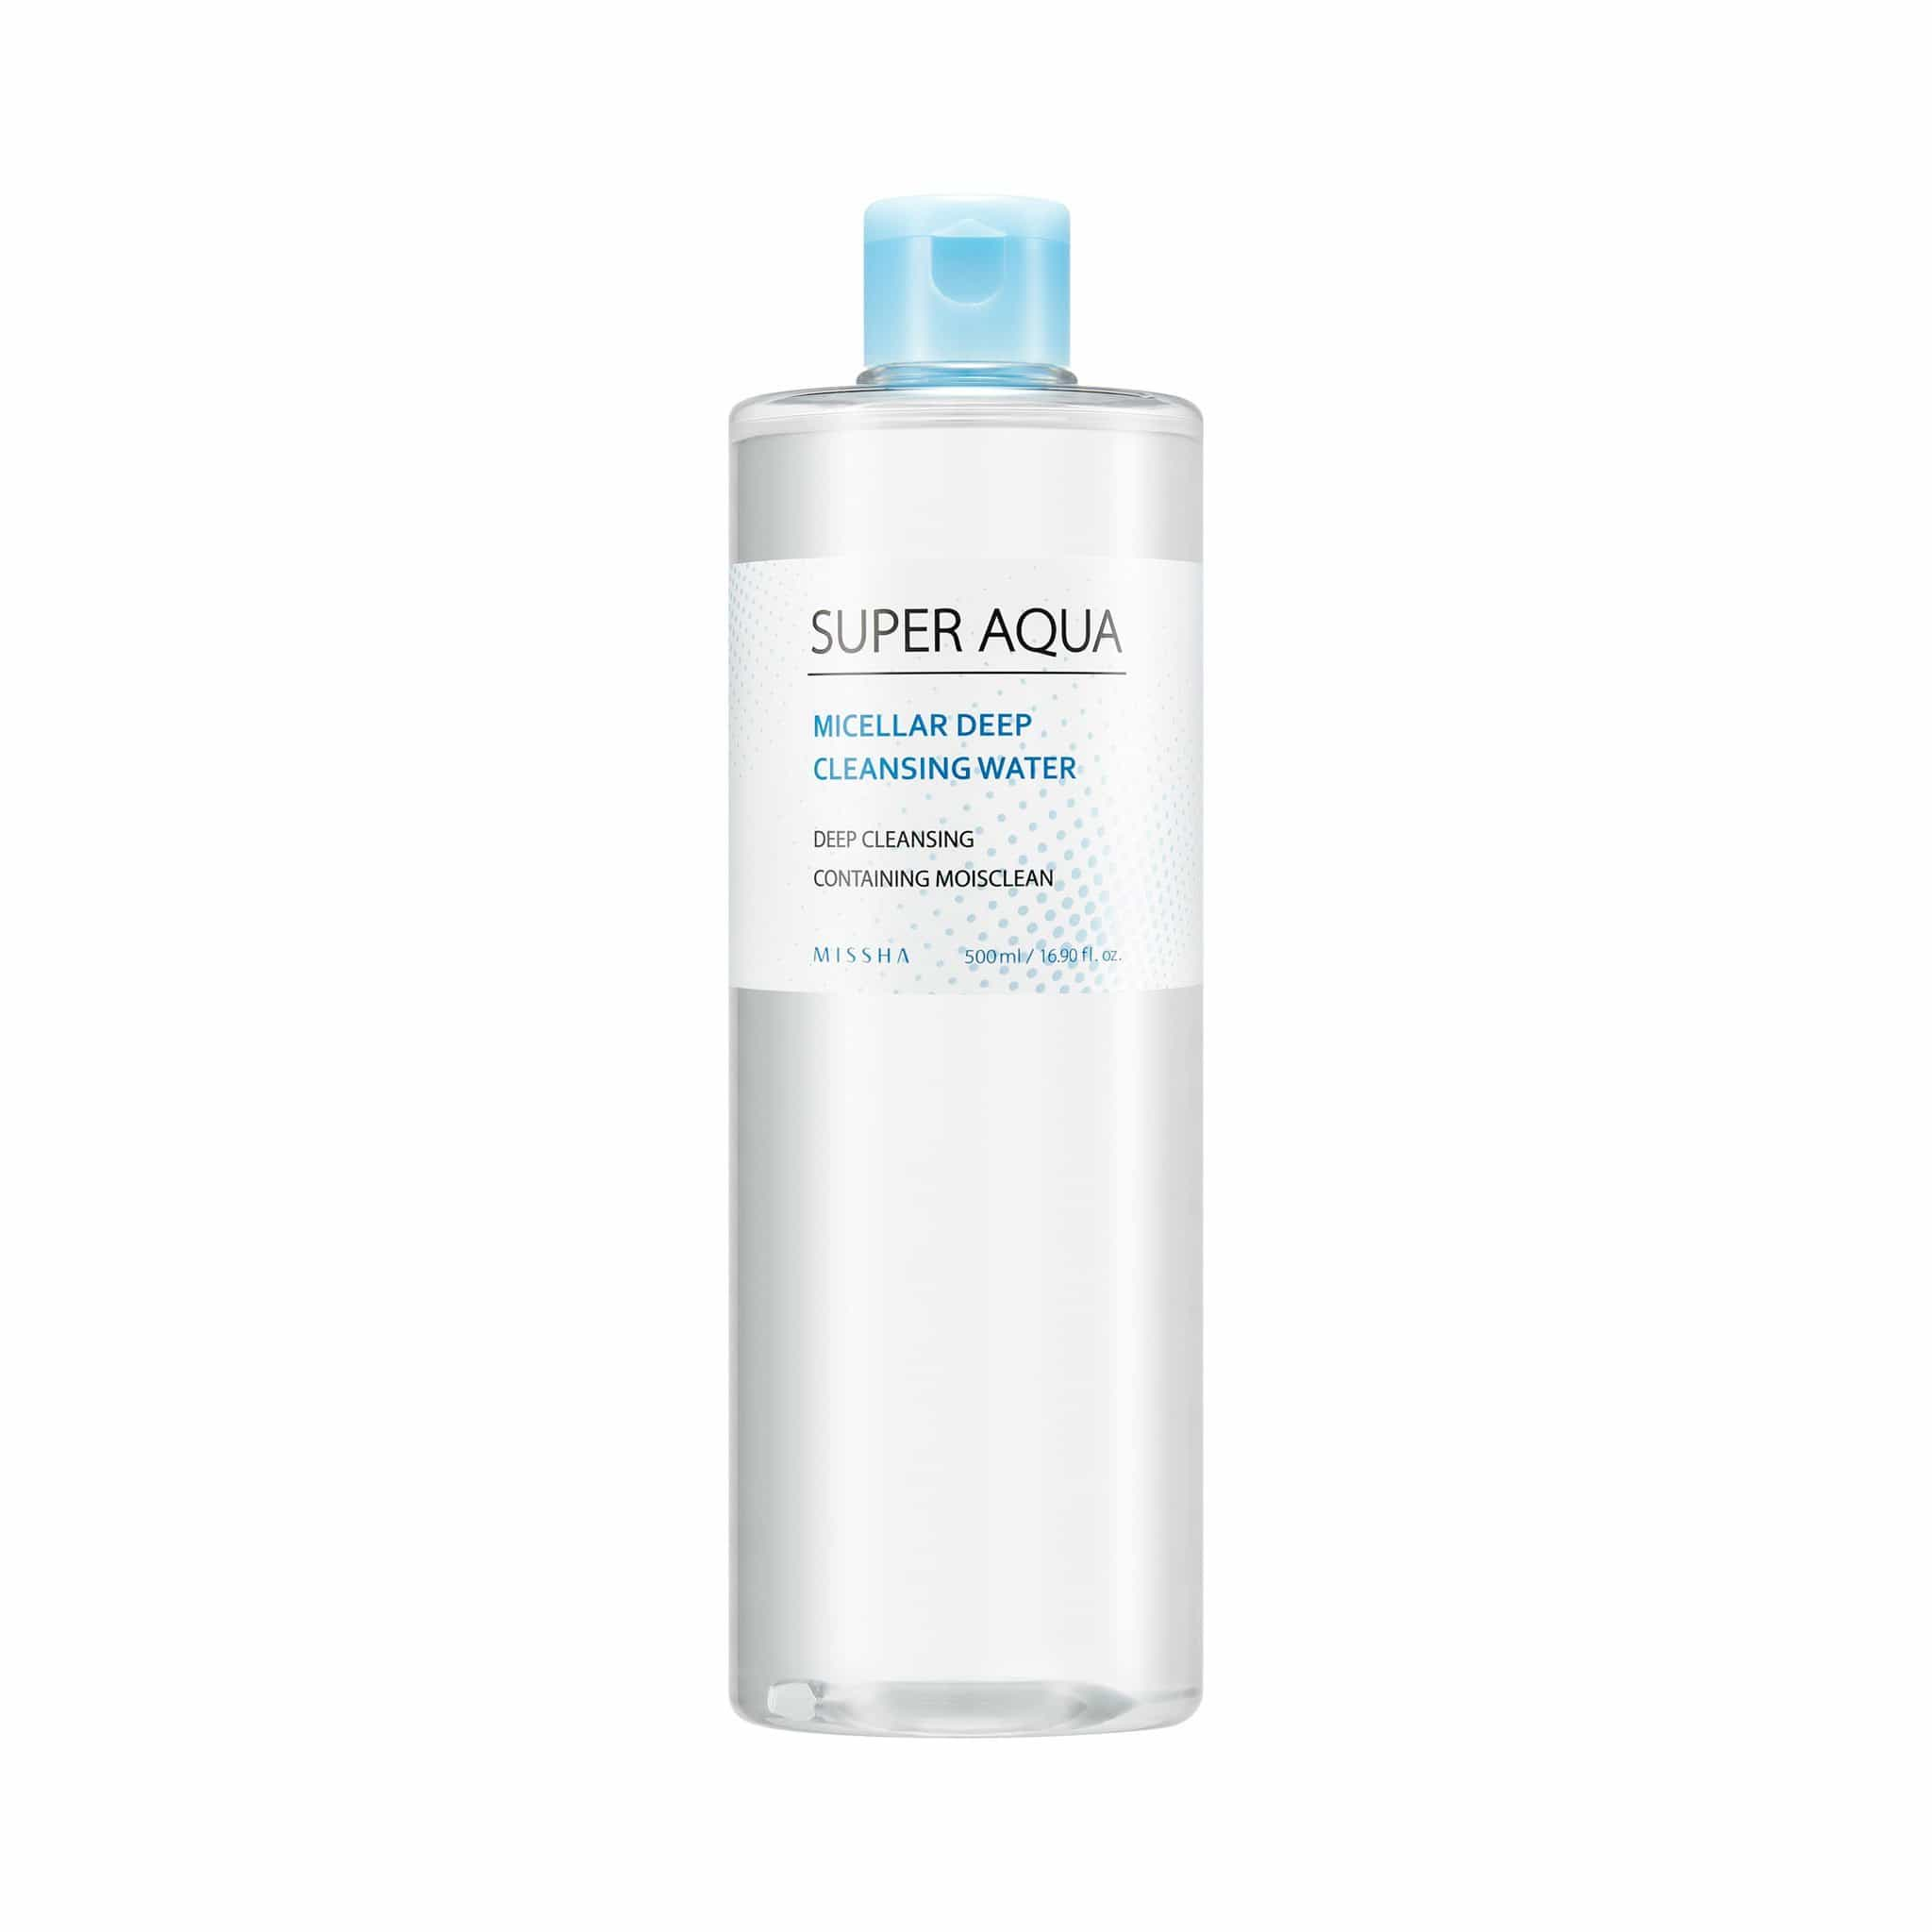 SUPER AQUA MICELLAR DEEP CLEANSING WATER - MISSHA